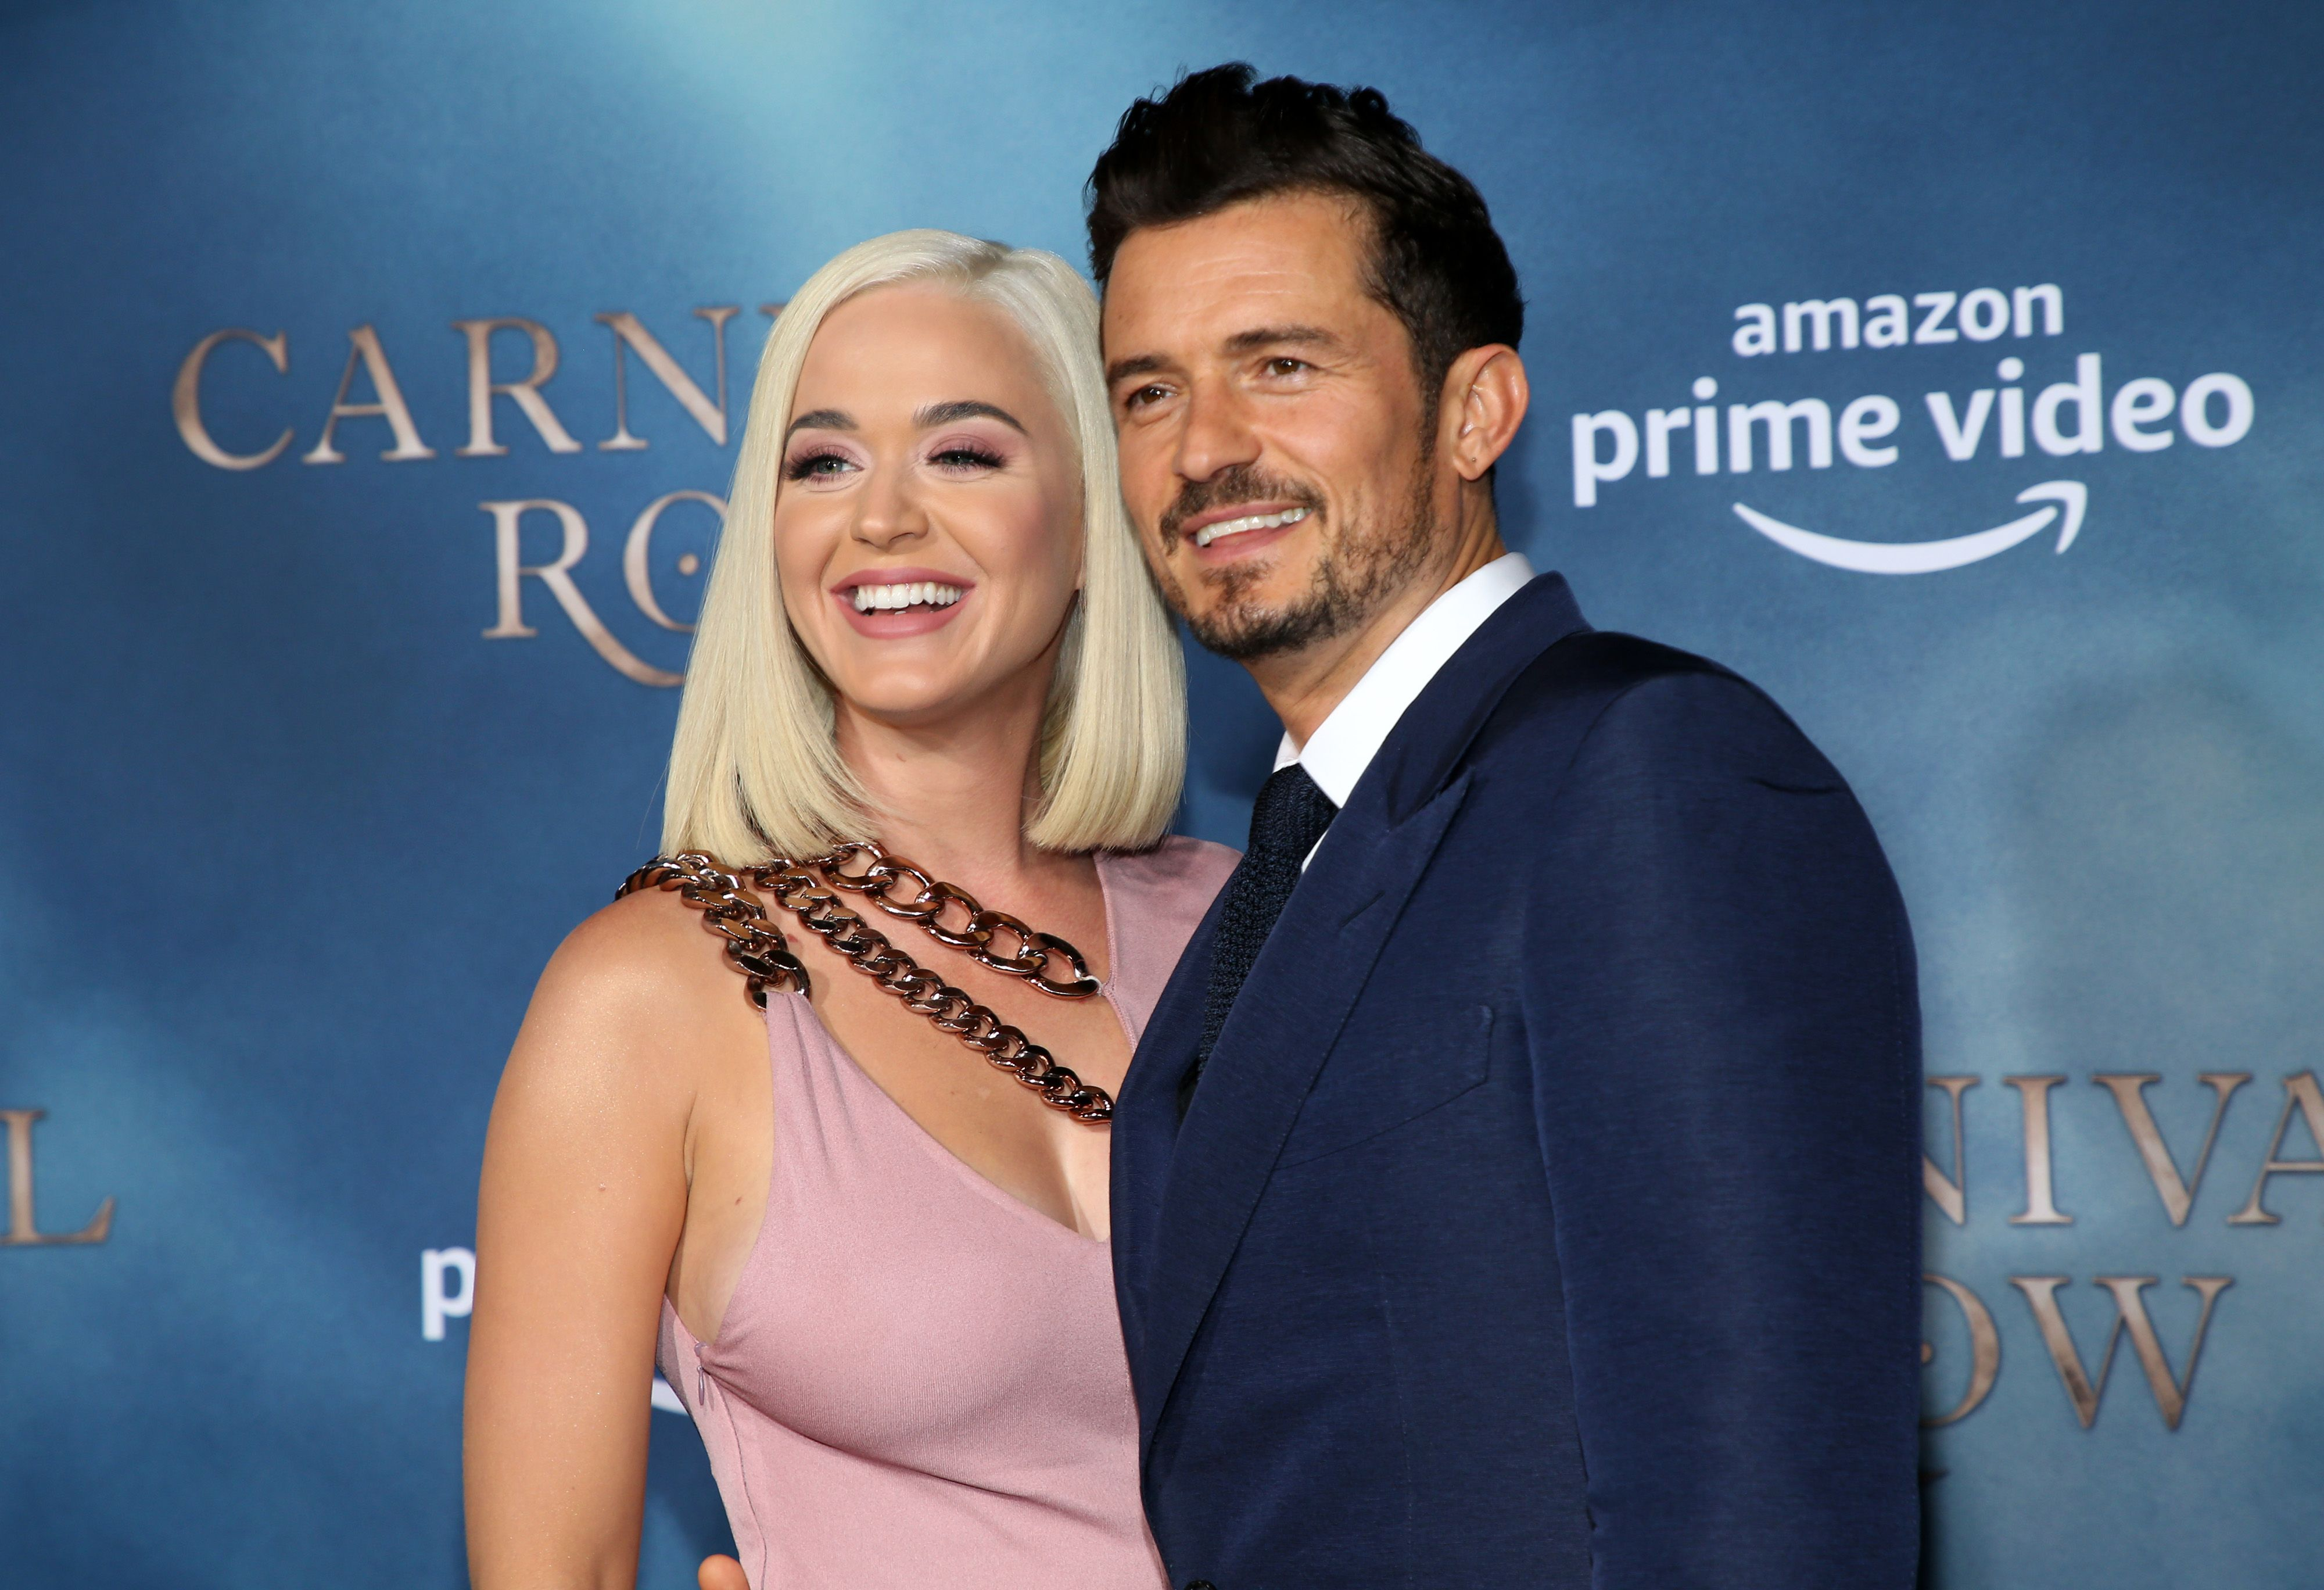 Katy Perry and Orlando Bloom